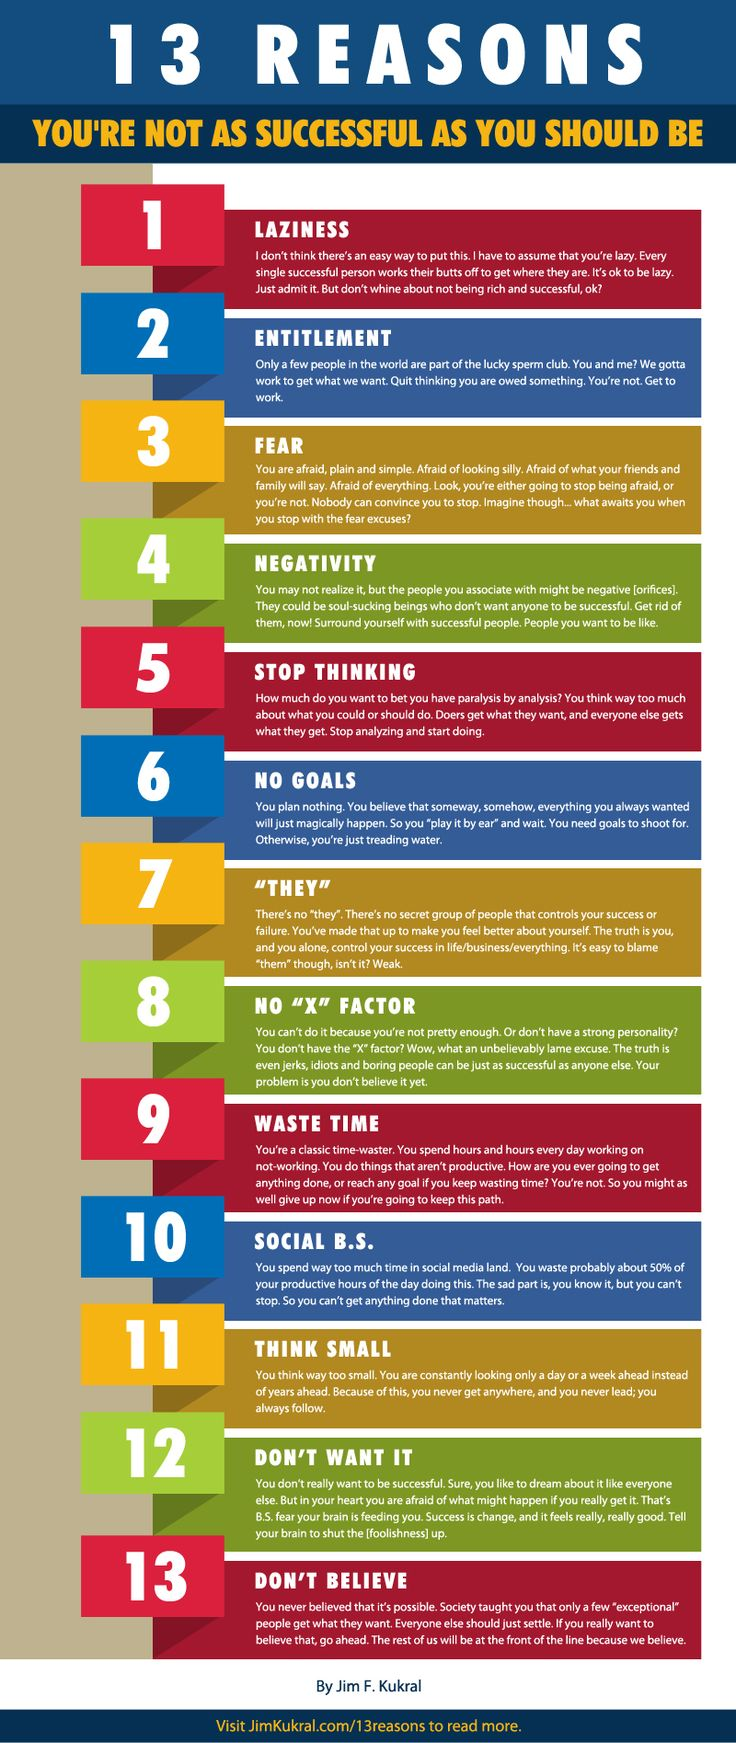 13 Reasons You're Not as Successful as You Could Be. Good reminders of achieving your goals.